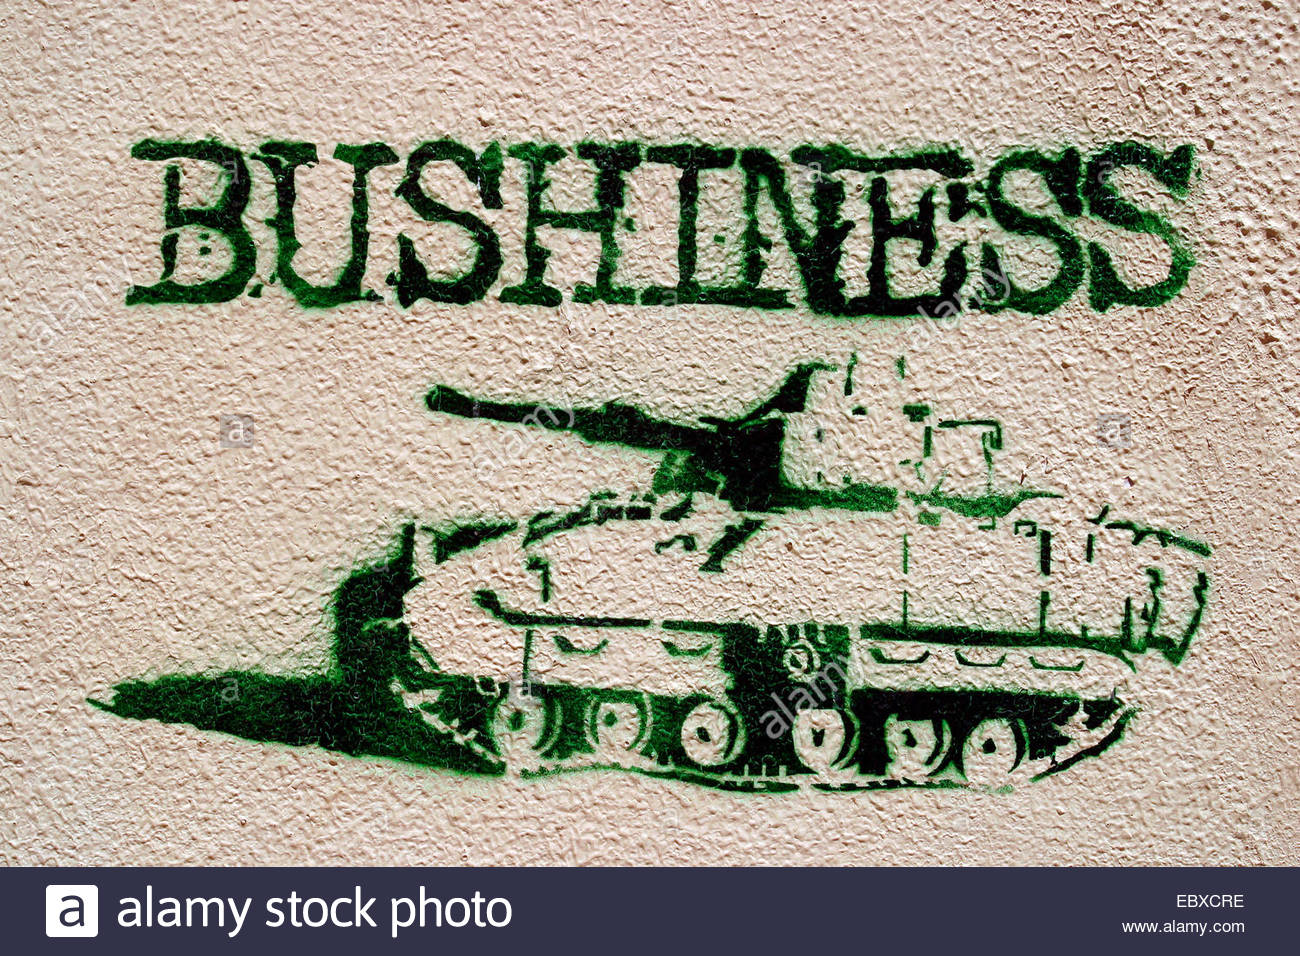 tank with catchword 'Bushiness', stencil graffiti - Stock Image